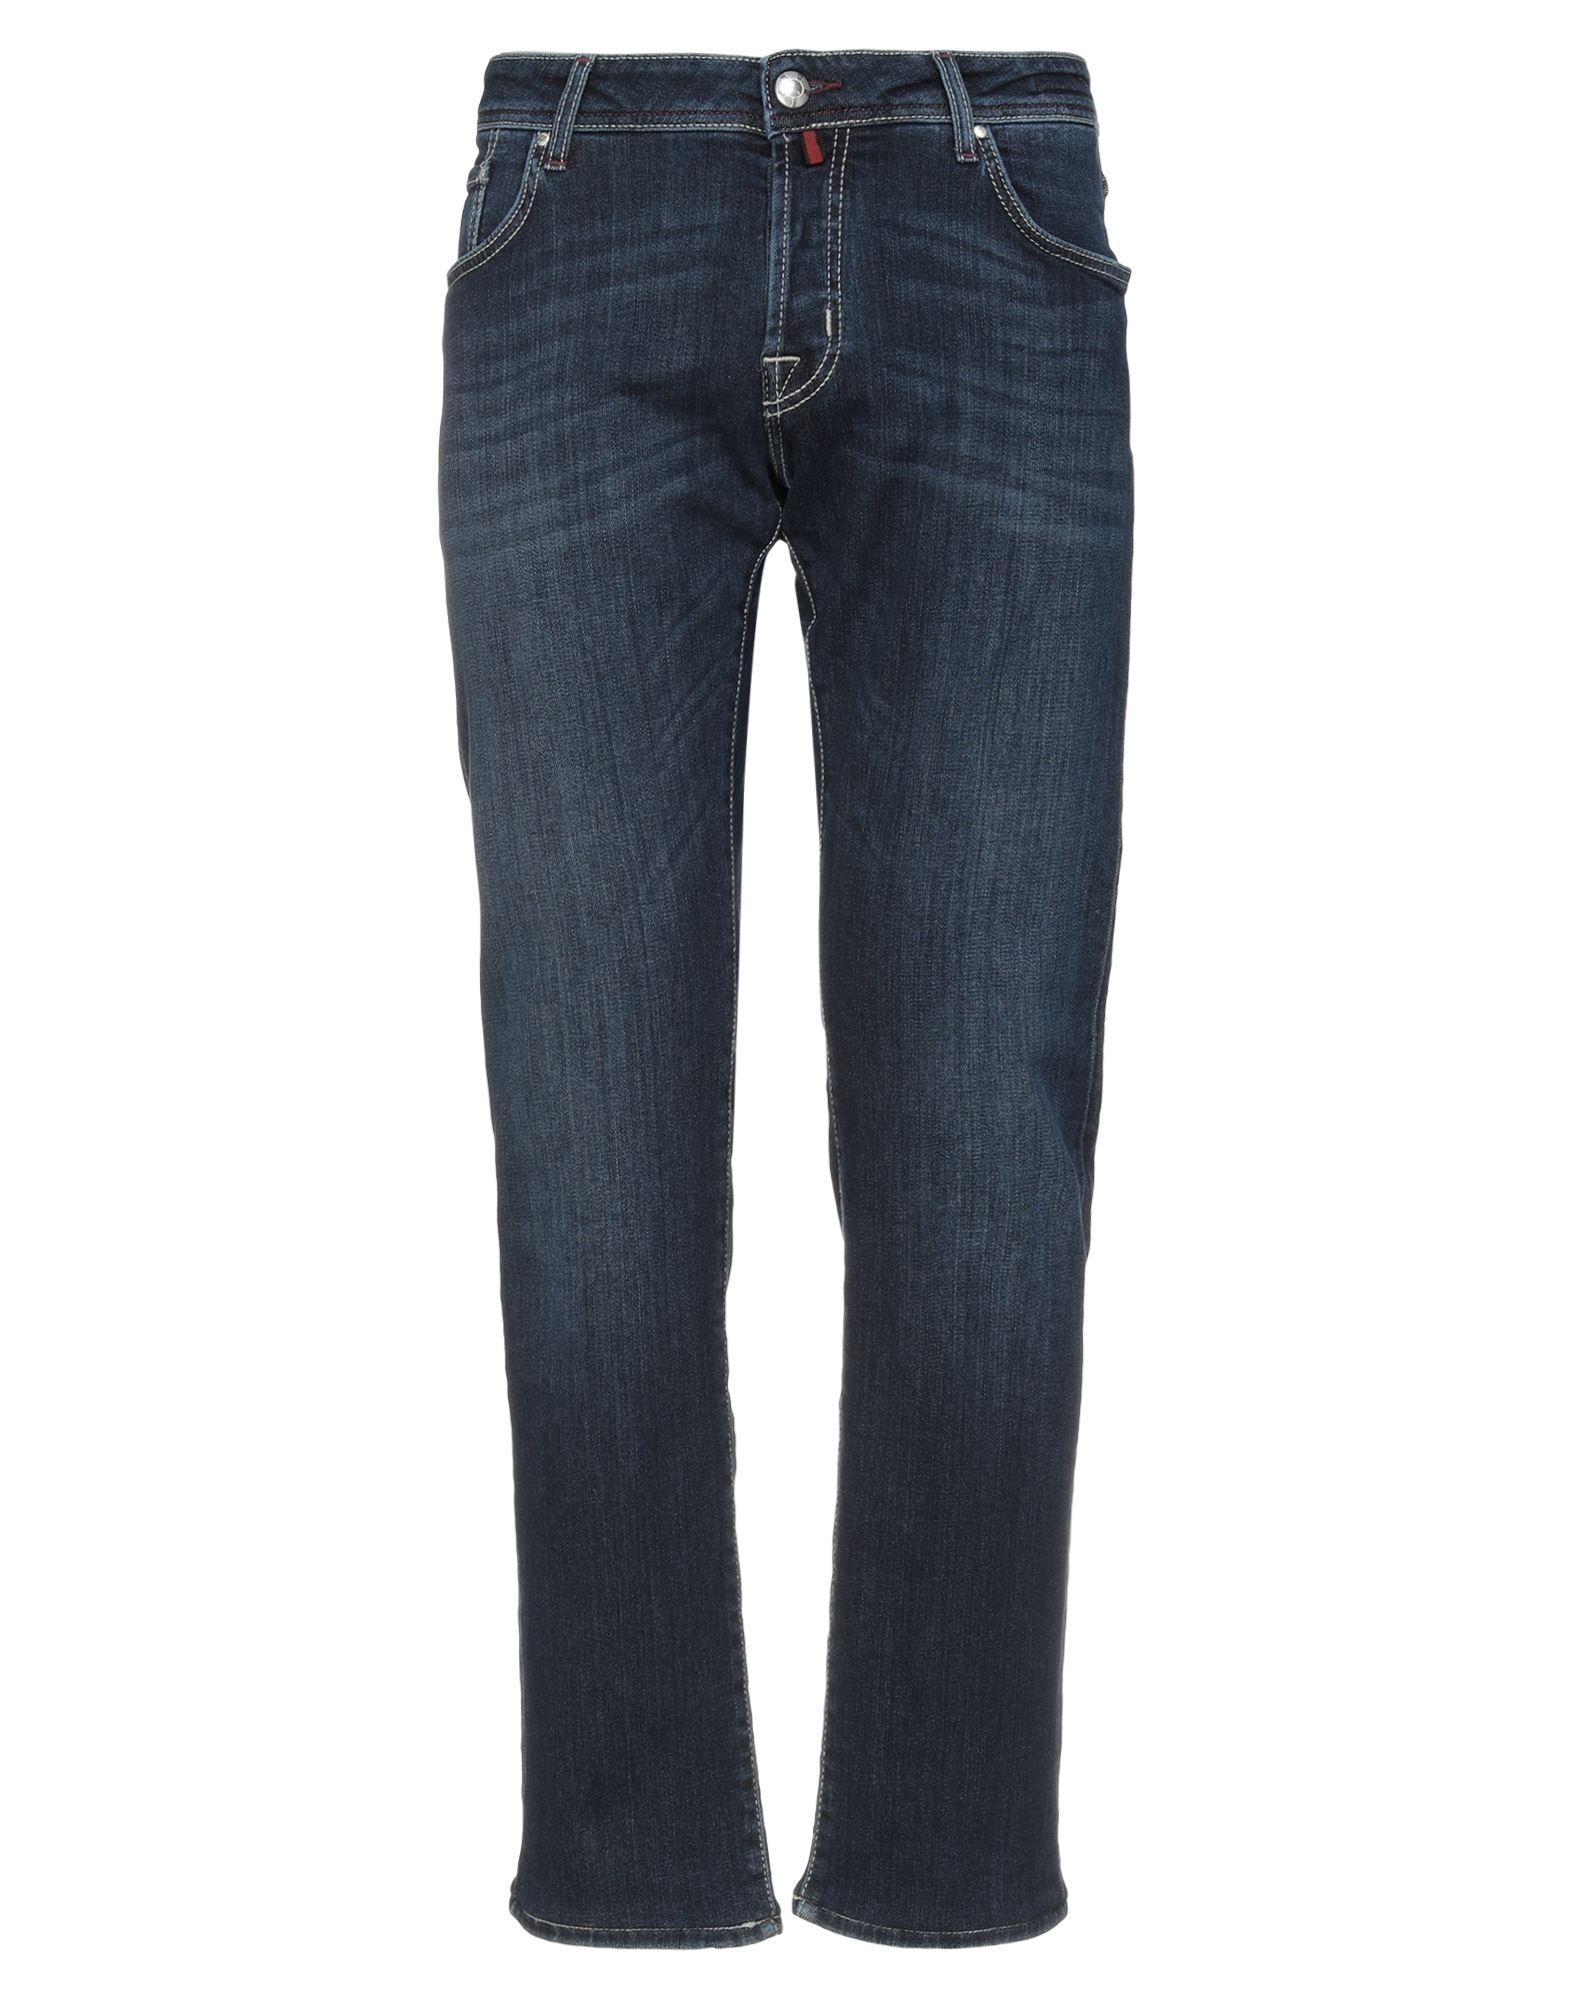 JACOB COHЁN Denim pants - Item 42830090